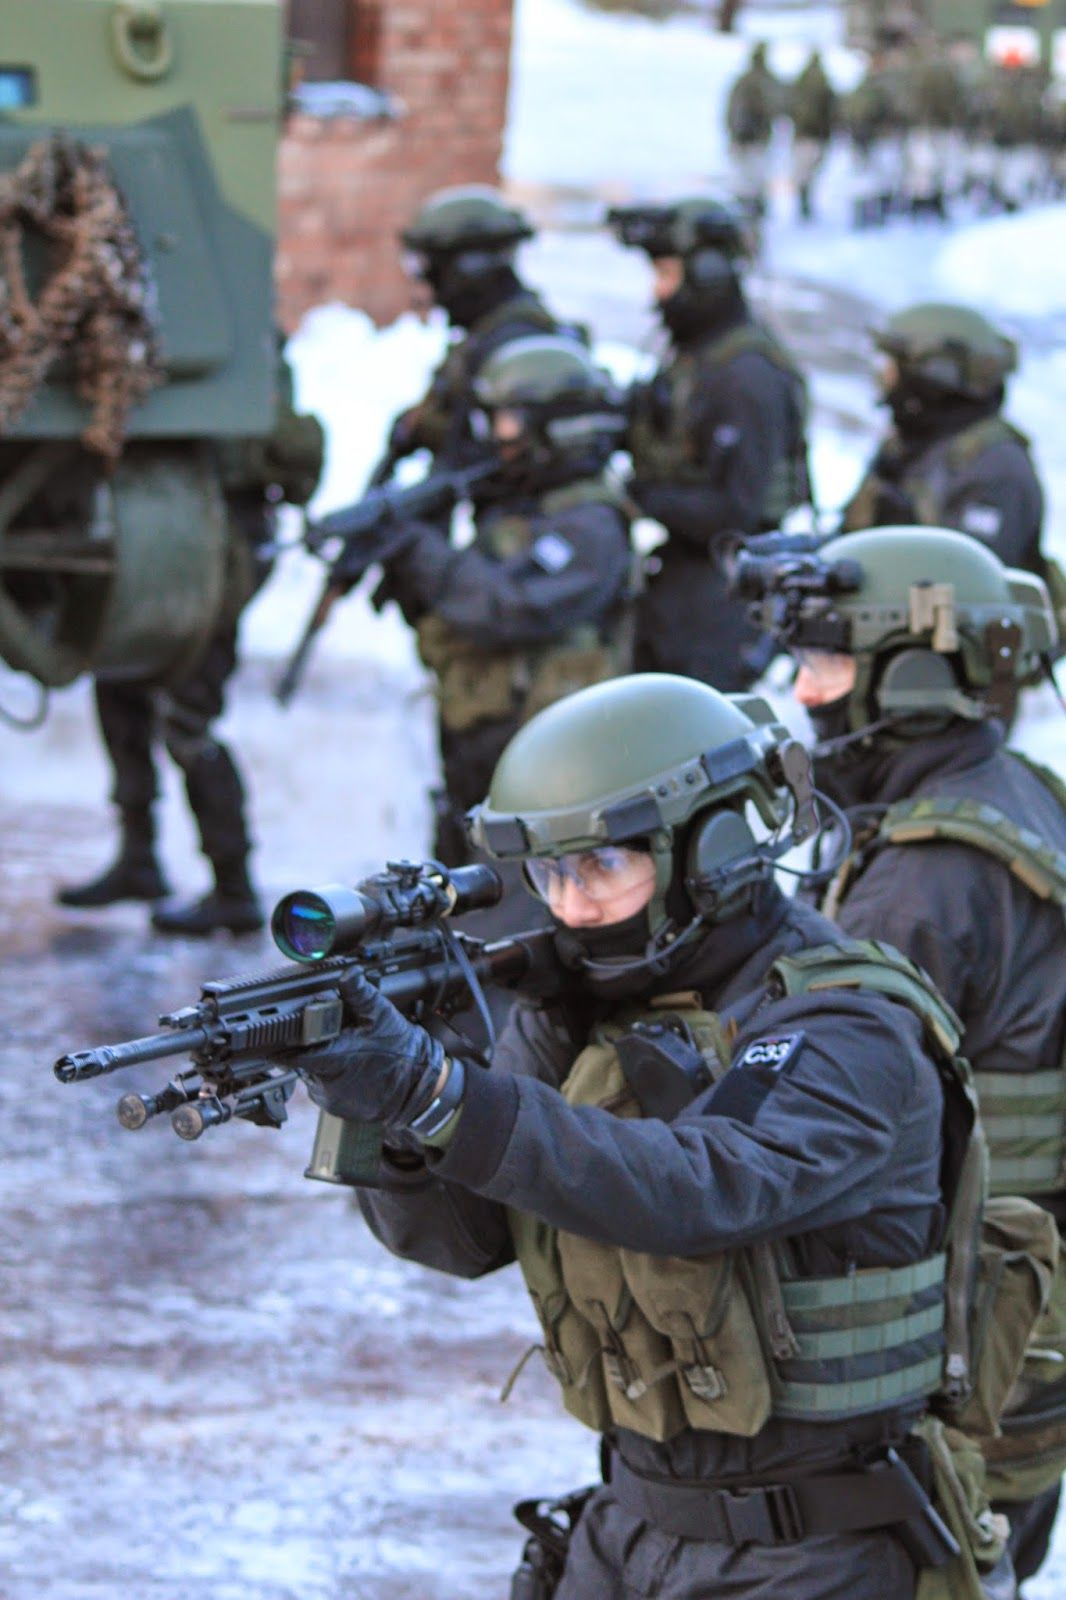 Finnish Special Forces with new Helmet System 2020